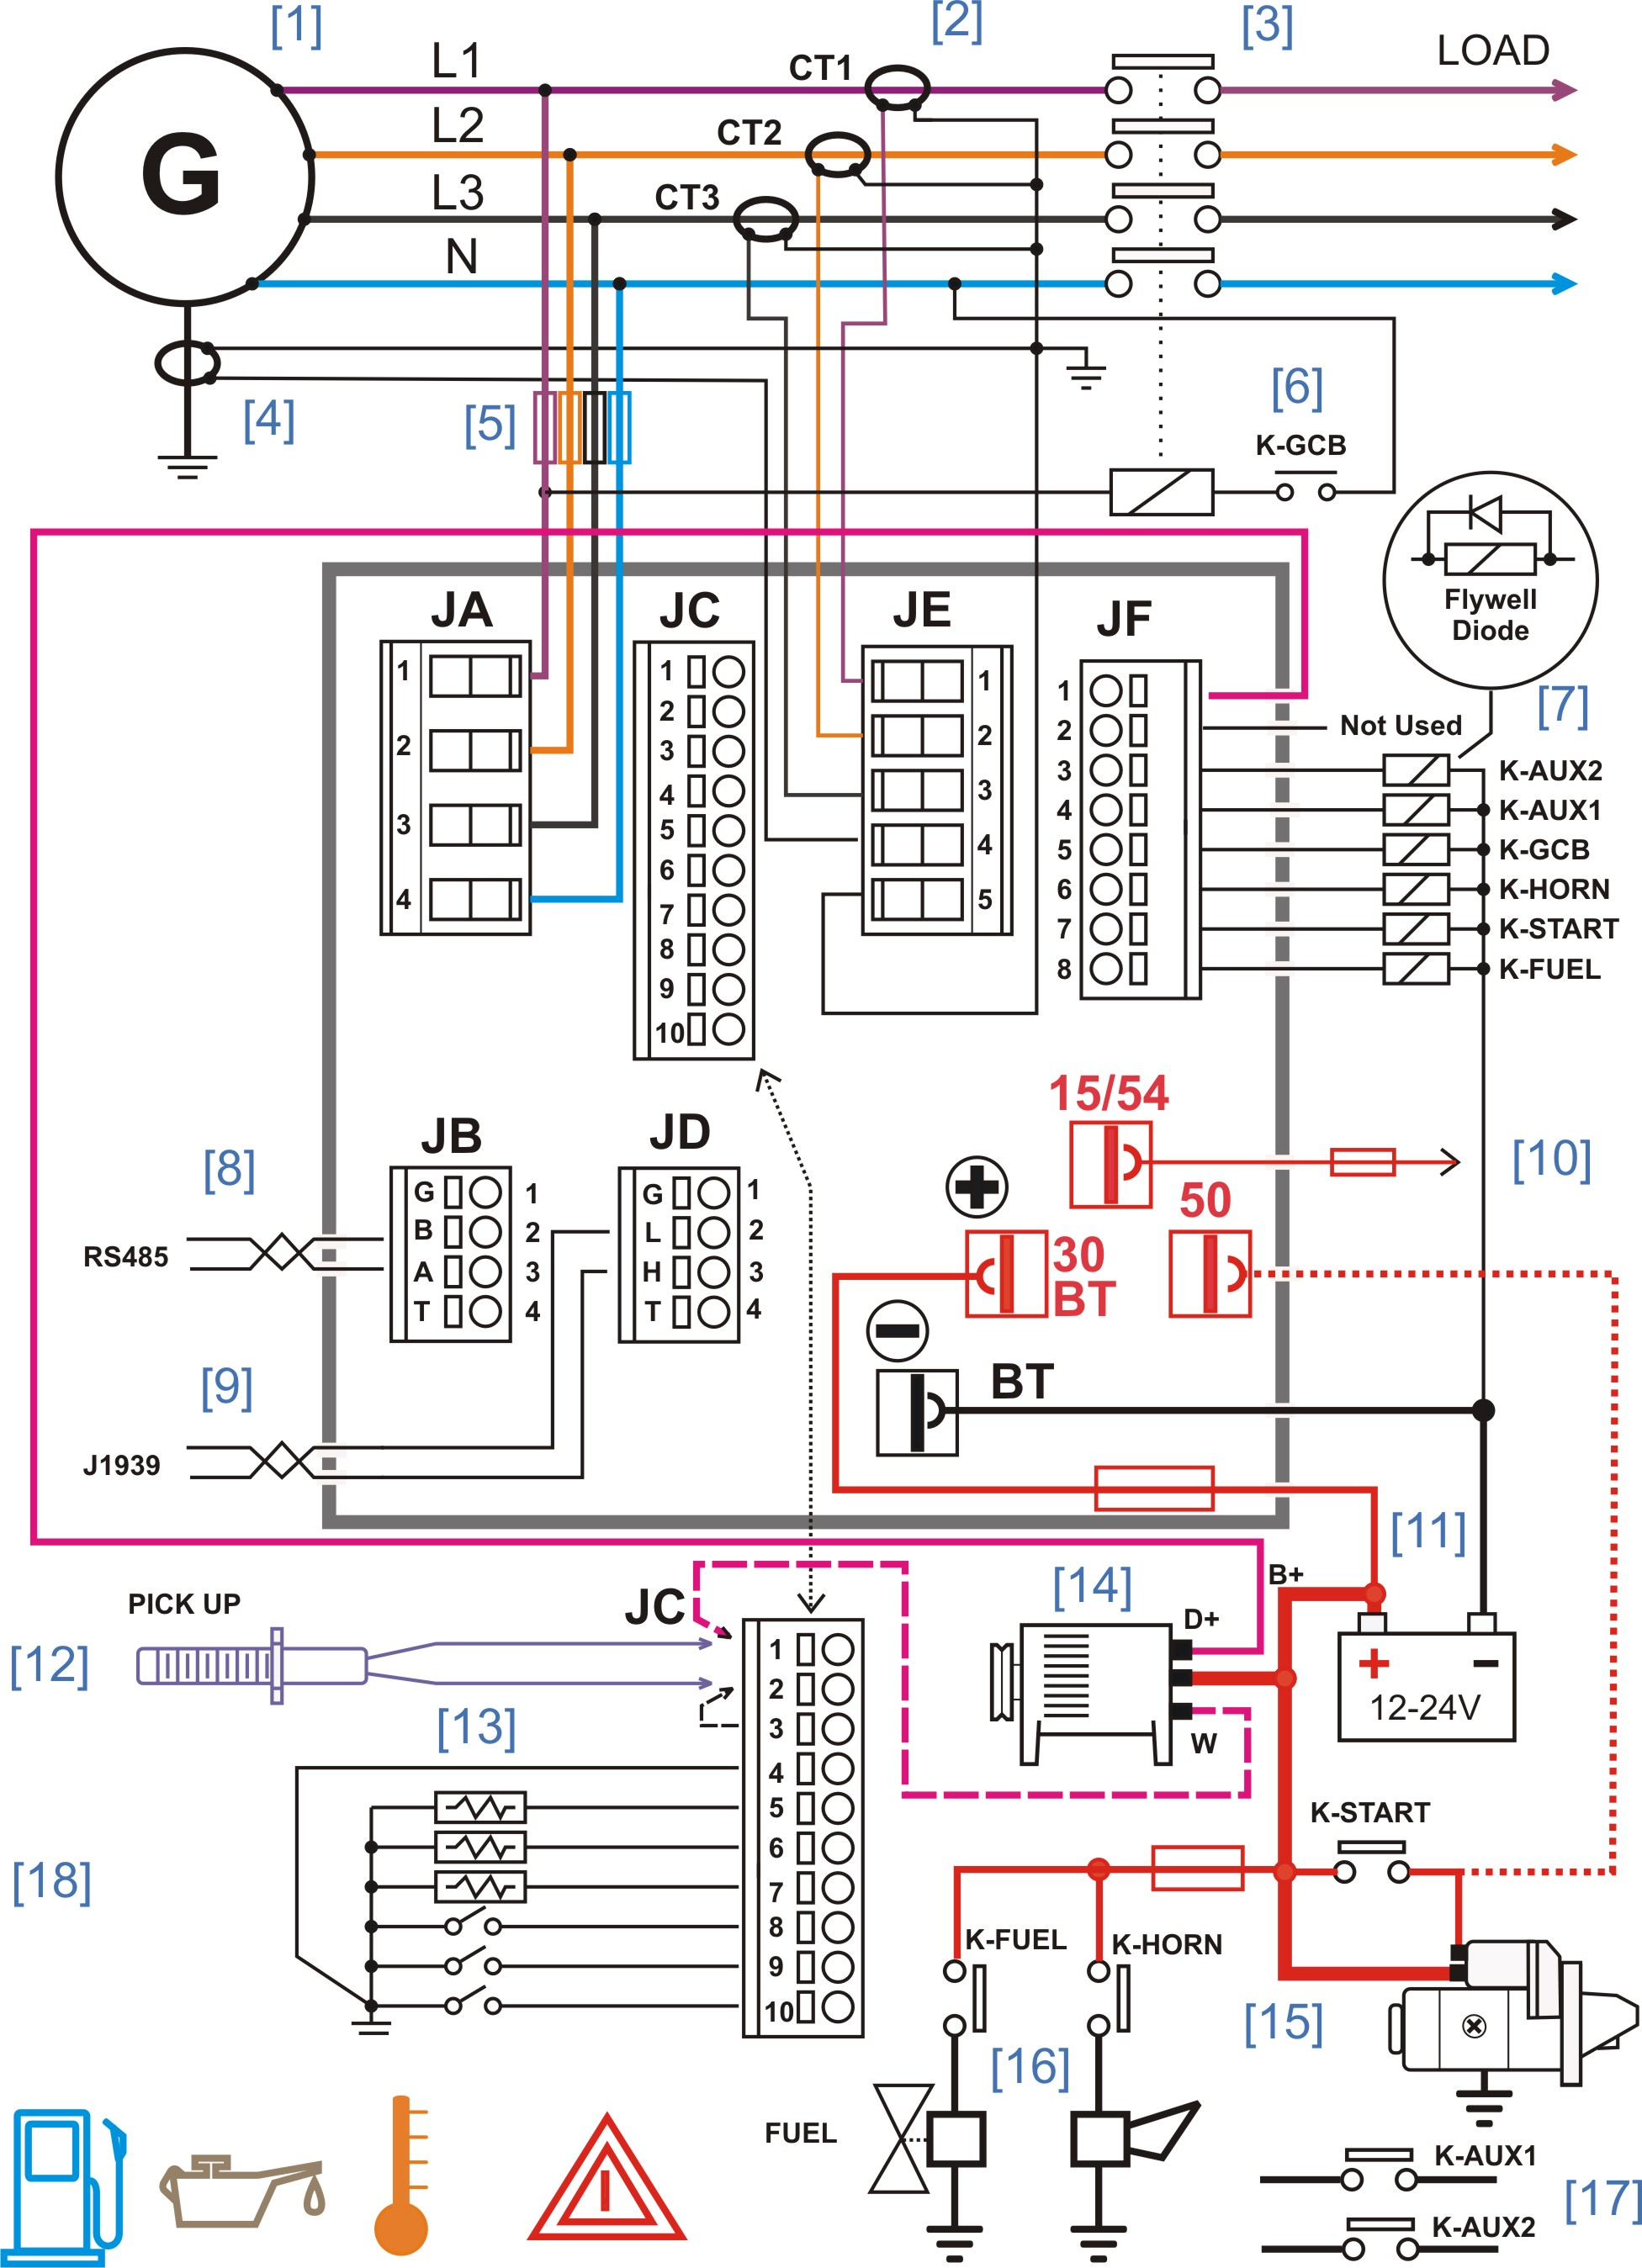 Diesel Generator Control Panel Wiring Diagram diesel generator control panel wiring diagram genset controller stamford generator wiring diagram download at gsmx.co